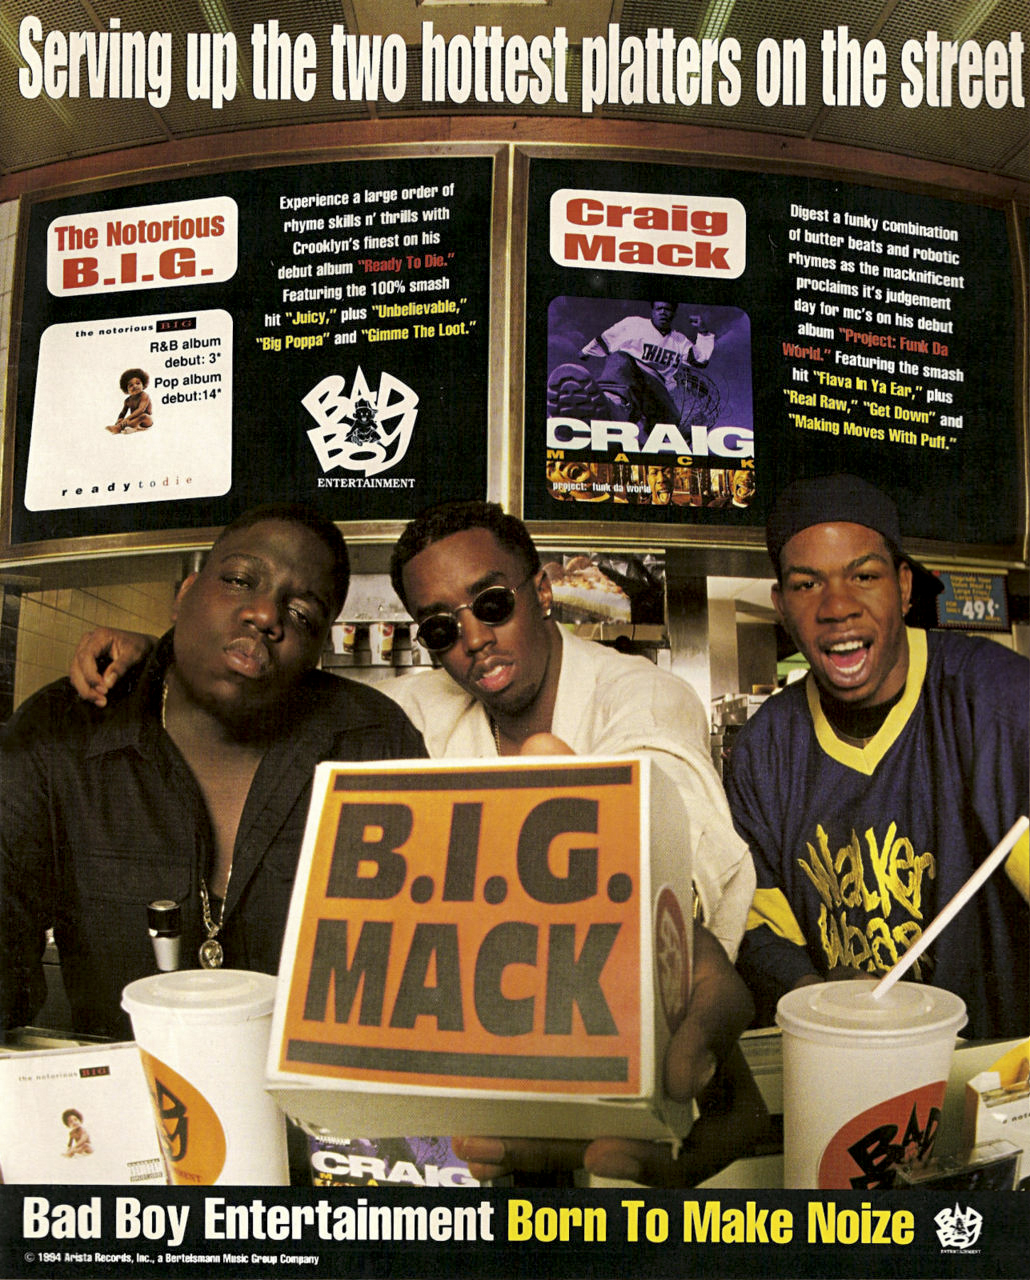 The Notorious B.I.G. & Craig Mack B.I.G. Mack Advert